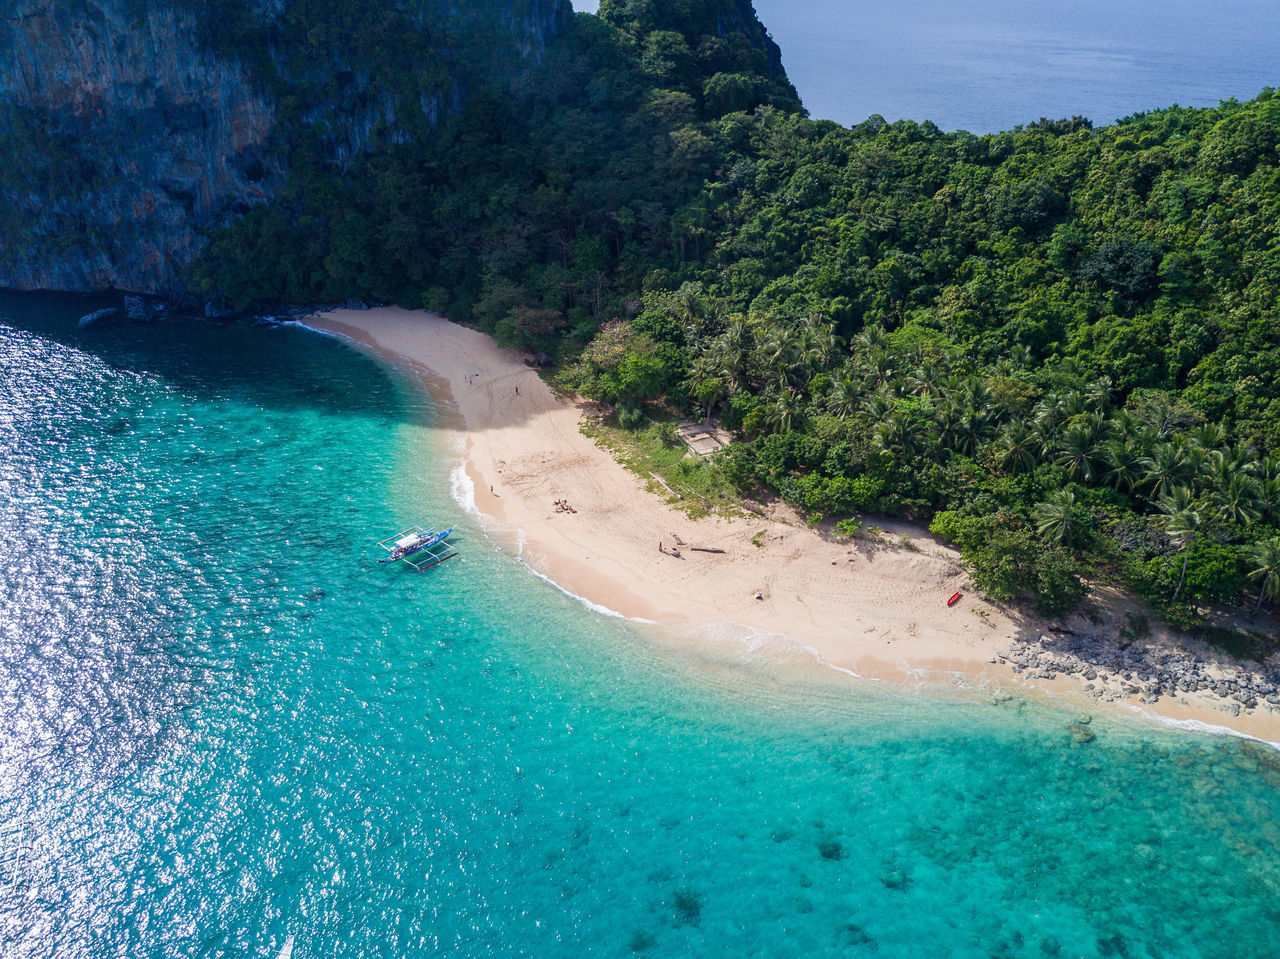 Aerial View Beauty In Nature Day Drone  Dronephotography Eyeem Philippines Landscape Limestone Nature No People Outdoors Palawan Philippines Sand Tree Water